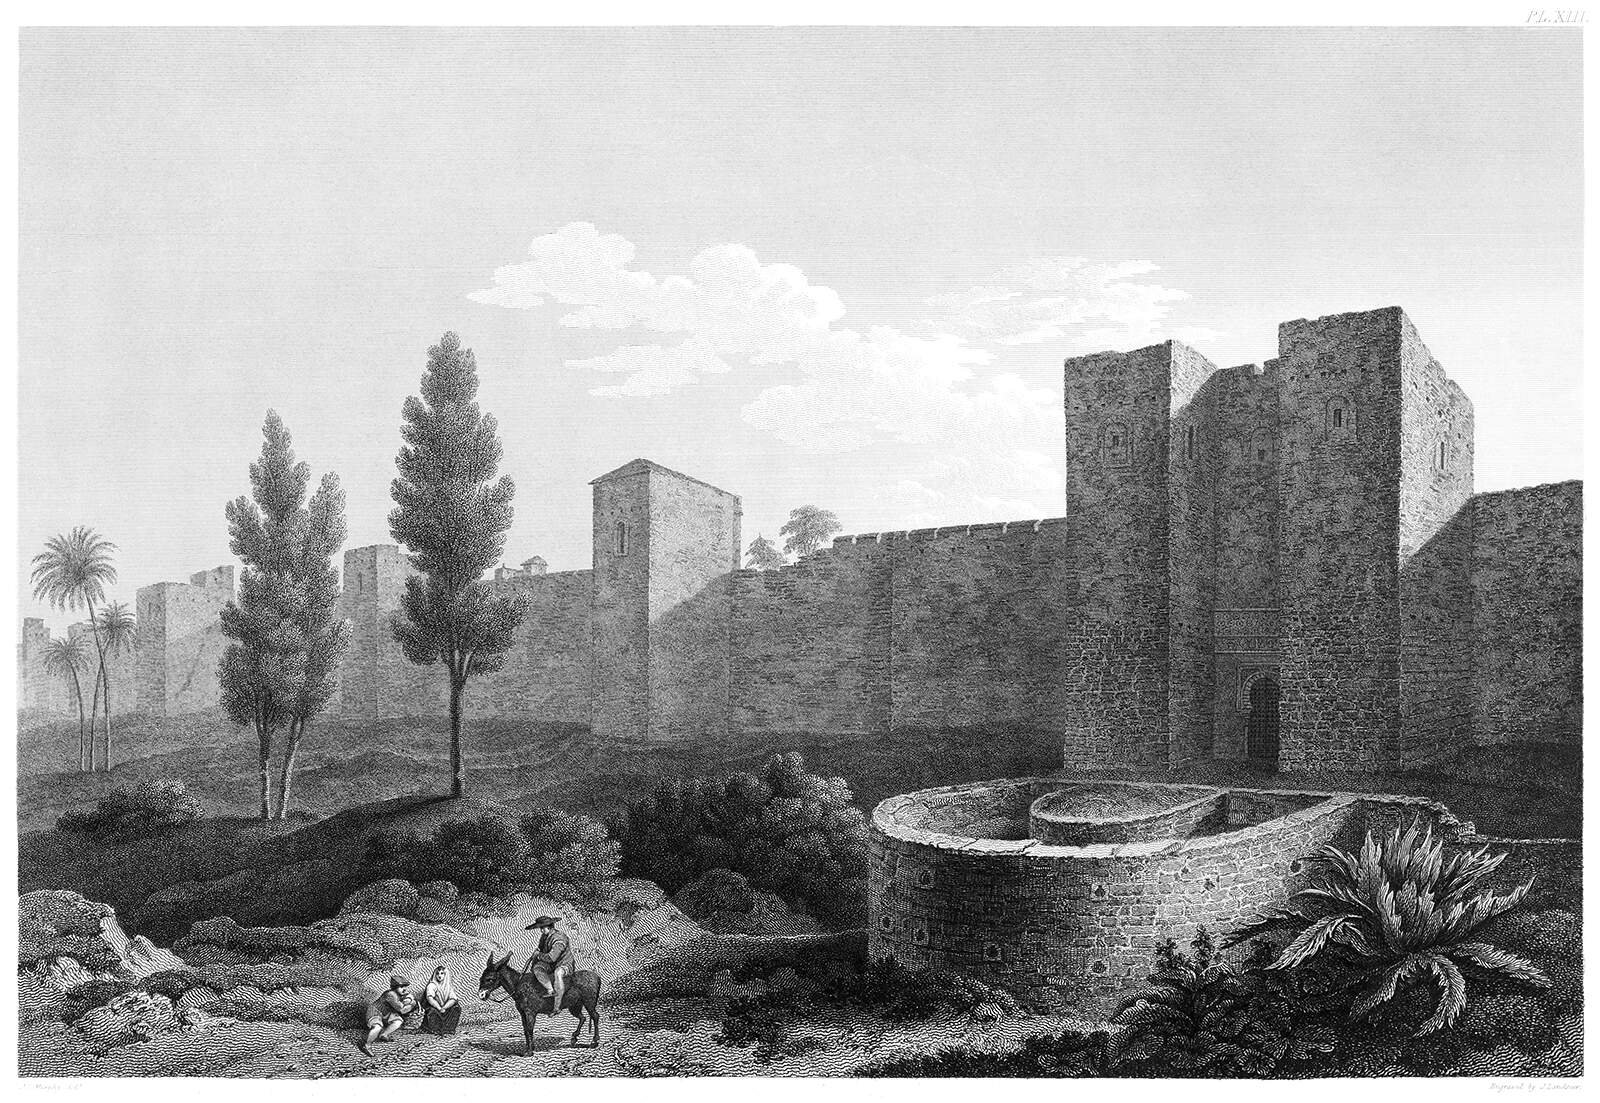 Fortifications outside the city walls of the Alhambra